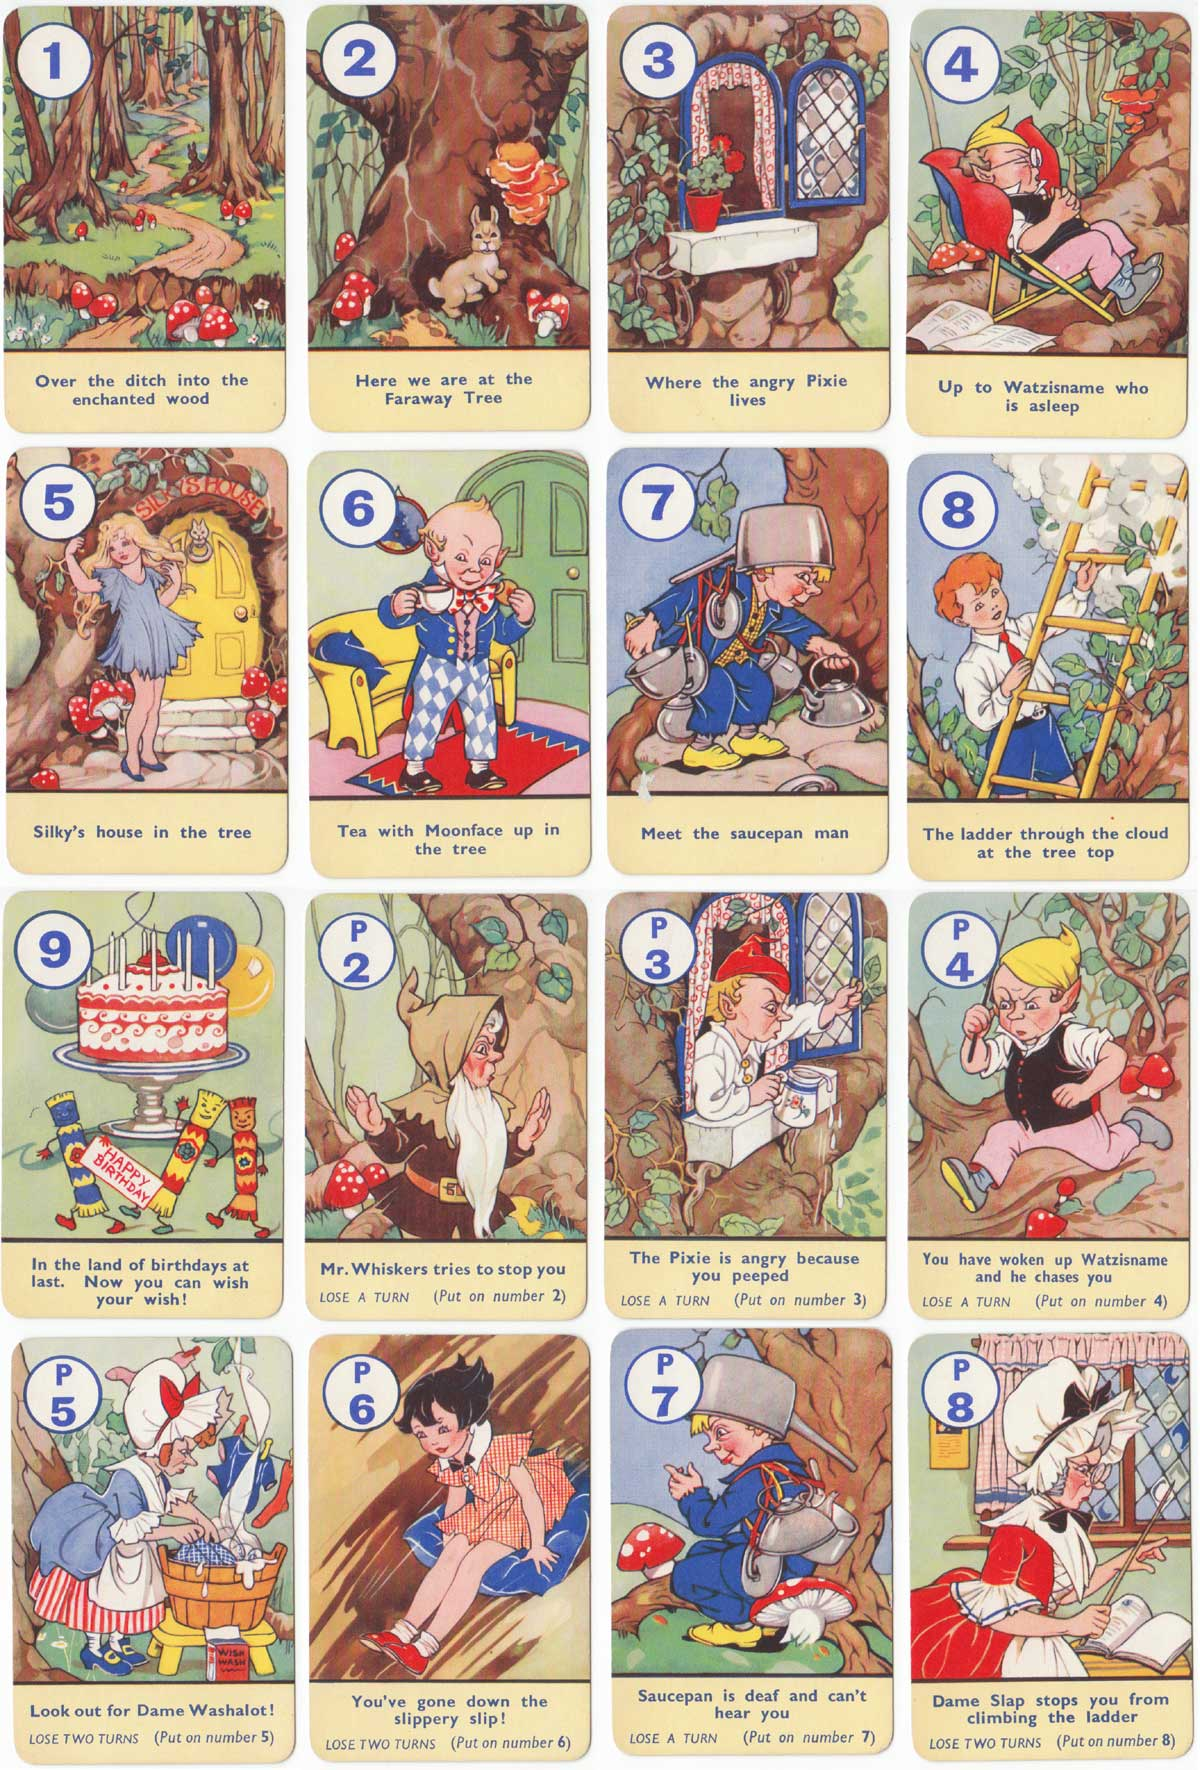 Faraway Tree published by Pepys Games in 1950 based on the stories by Enid Blyton